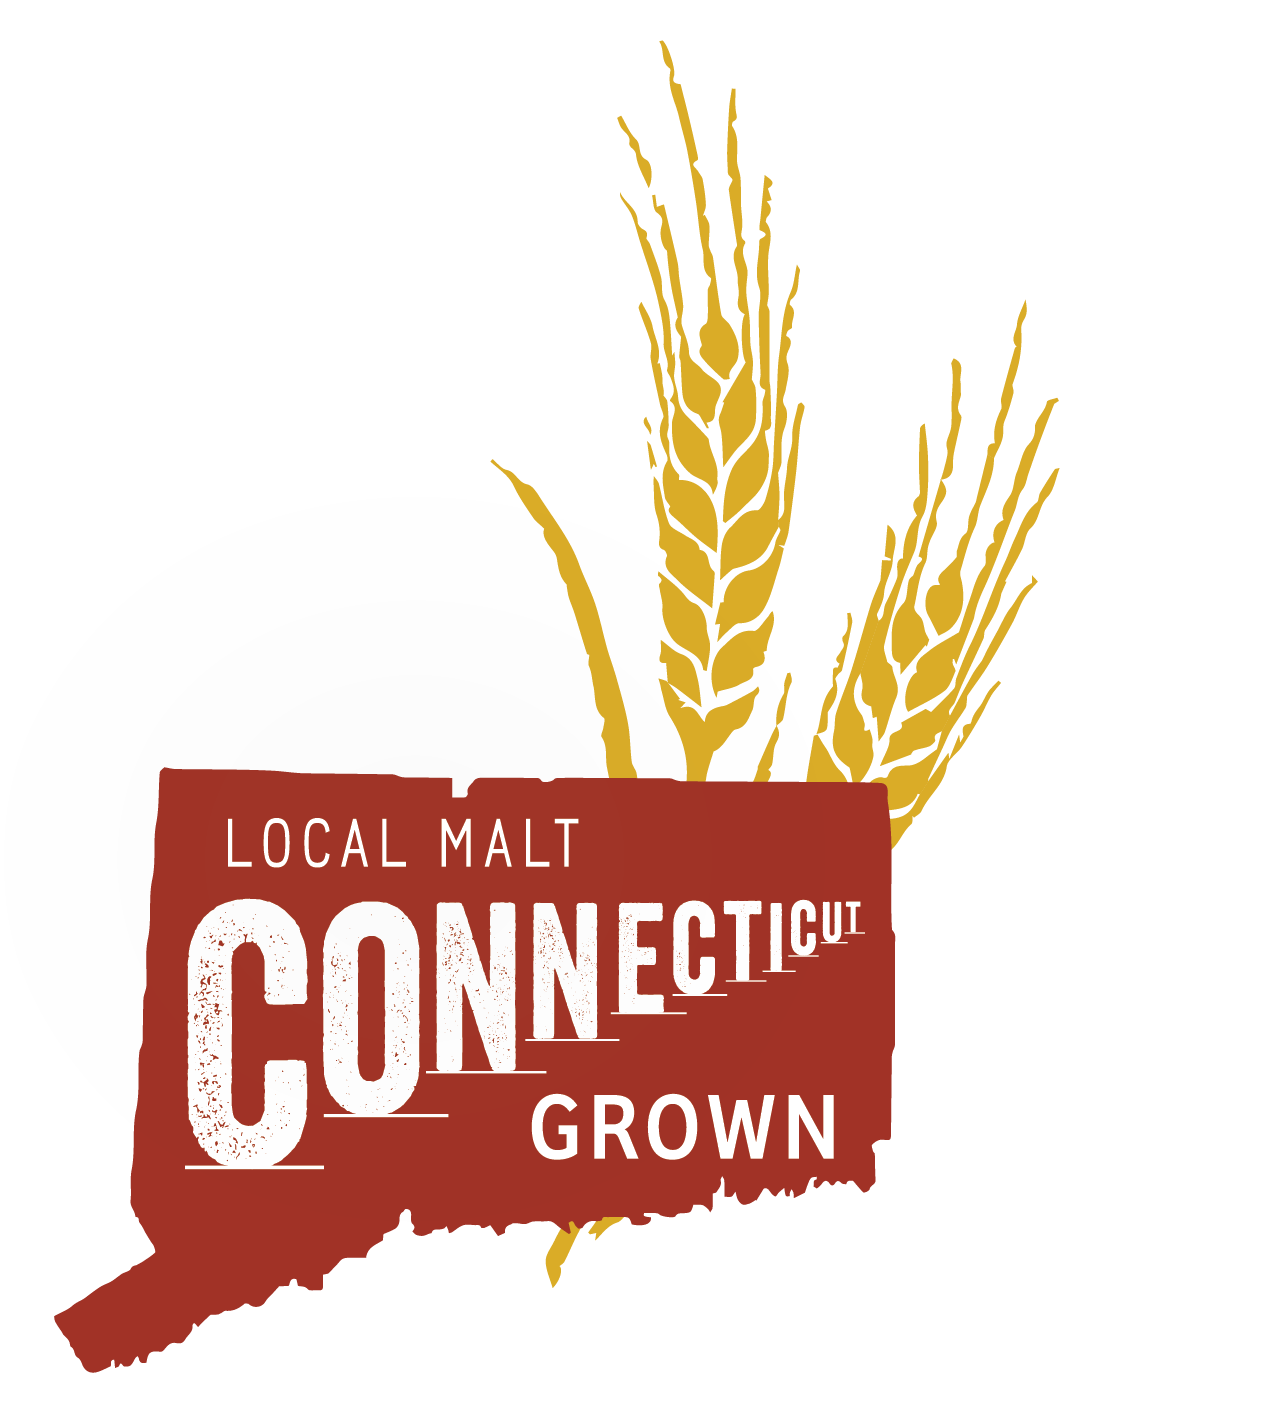 Local malt CT Grown-01.png